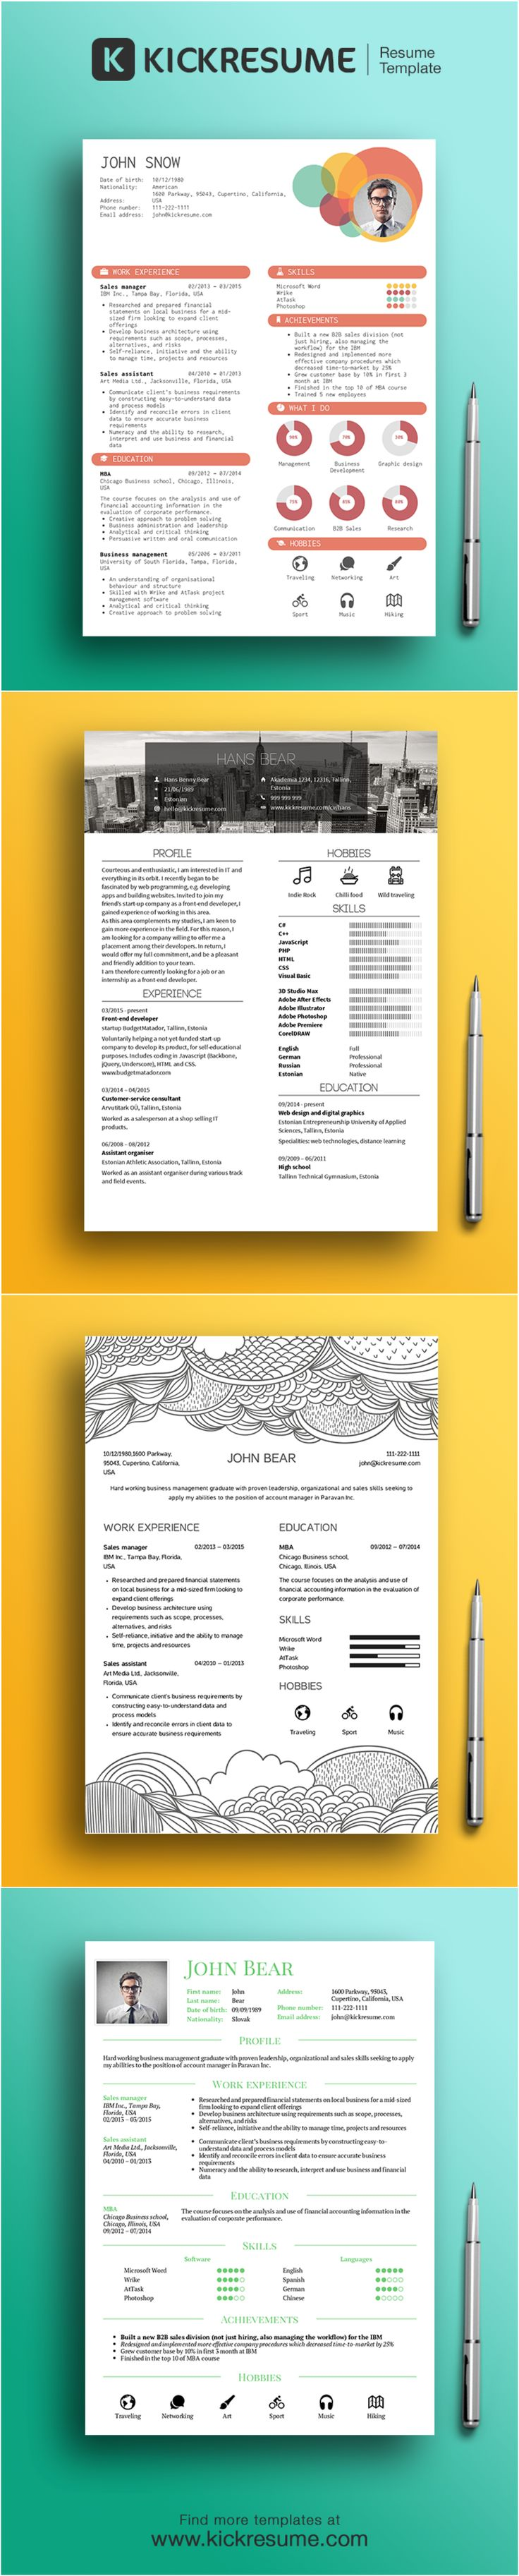 Perfect Beautiful Infographic Resume Templates By Www.kickresume.com